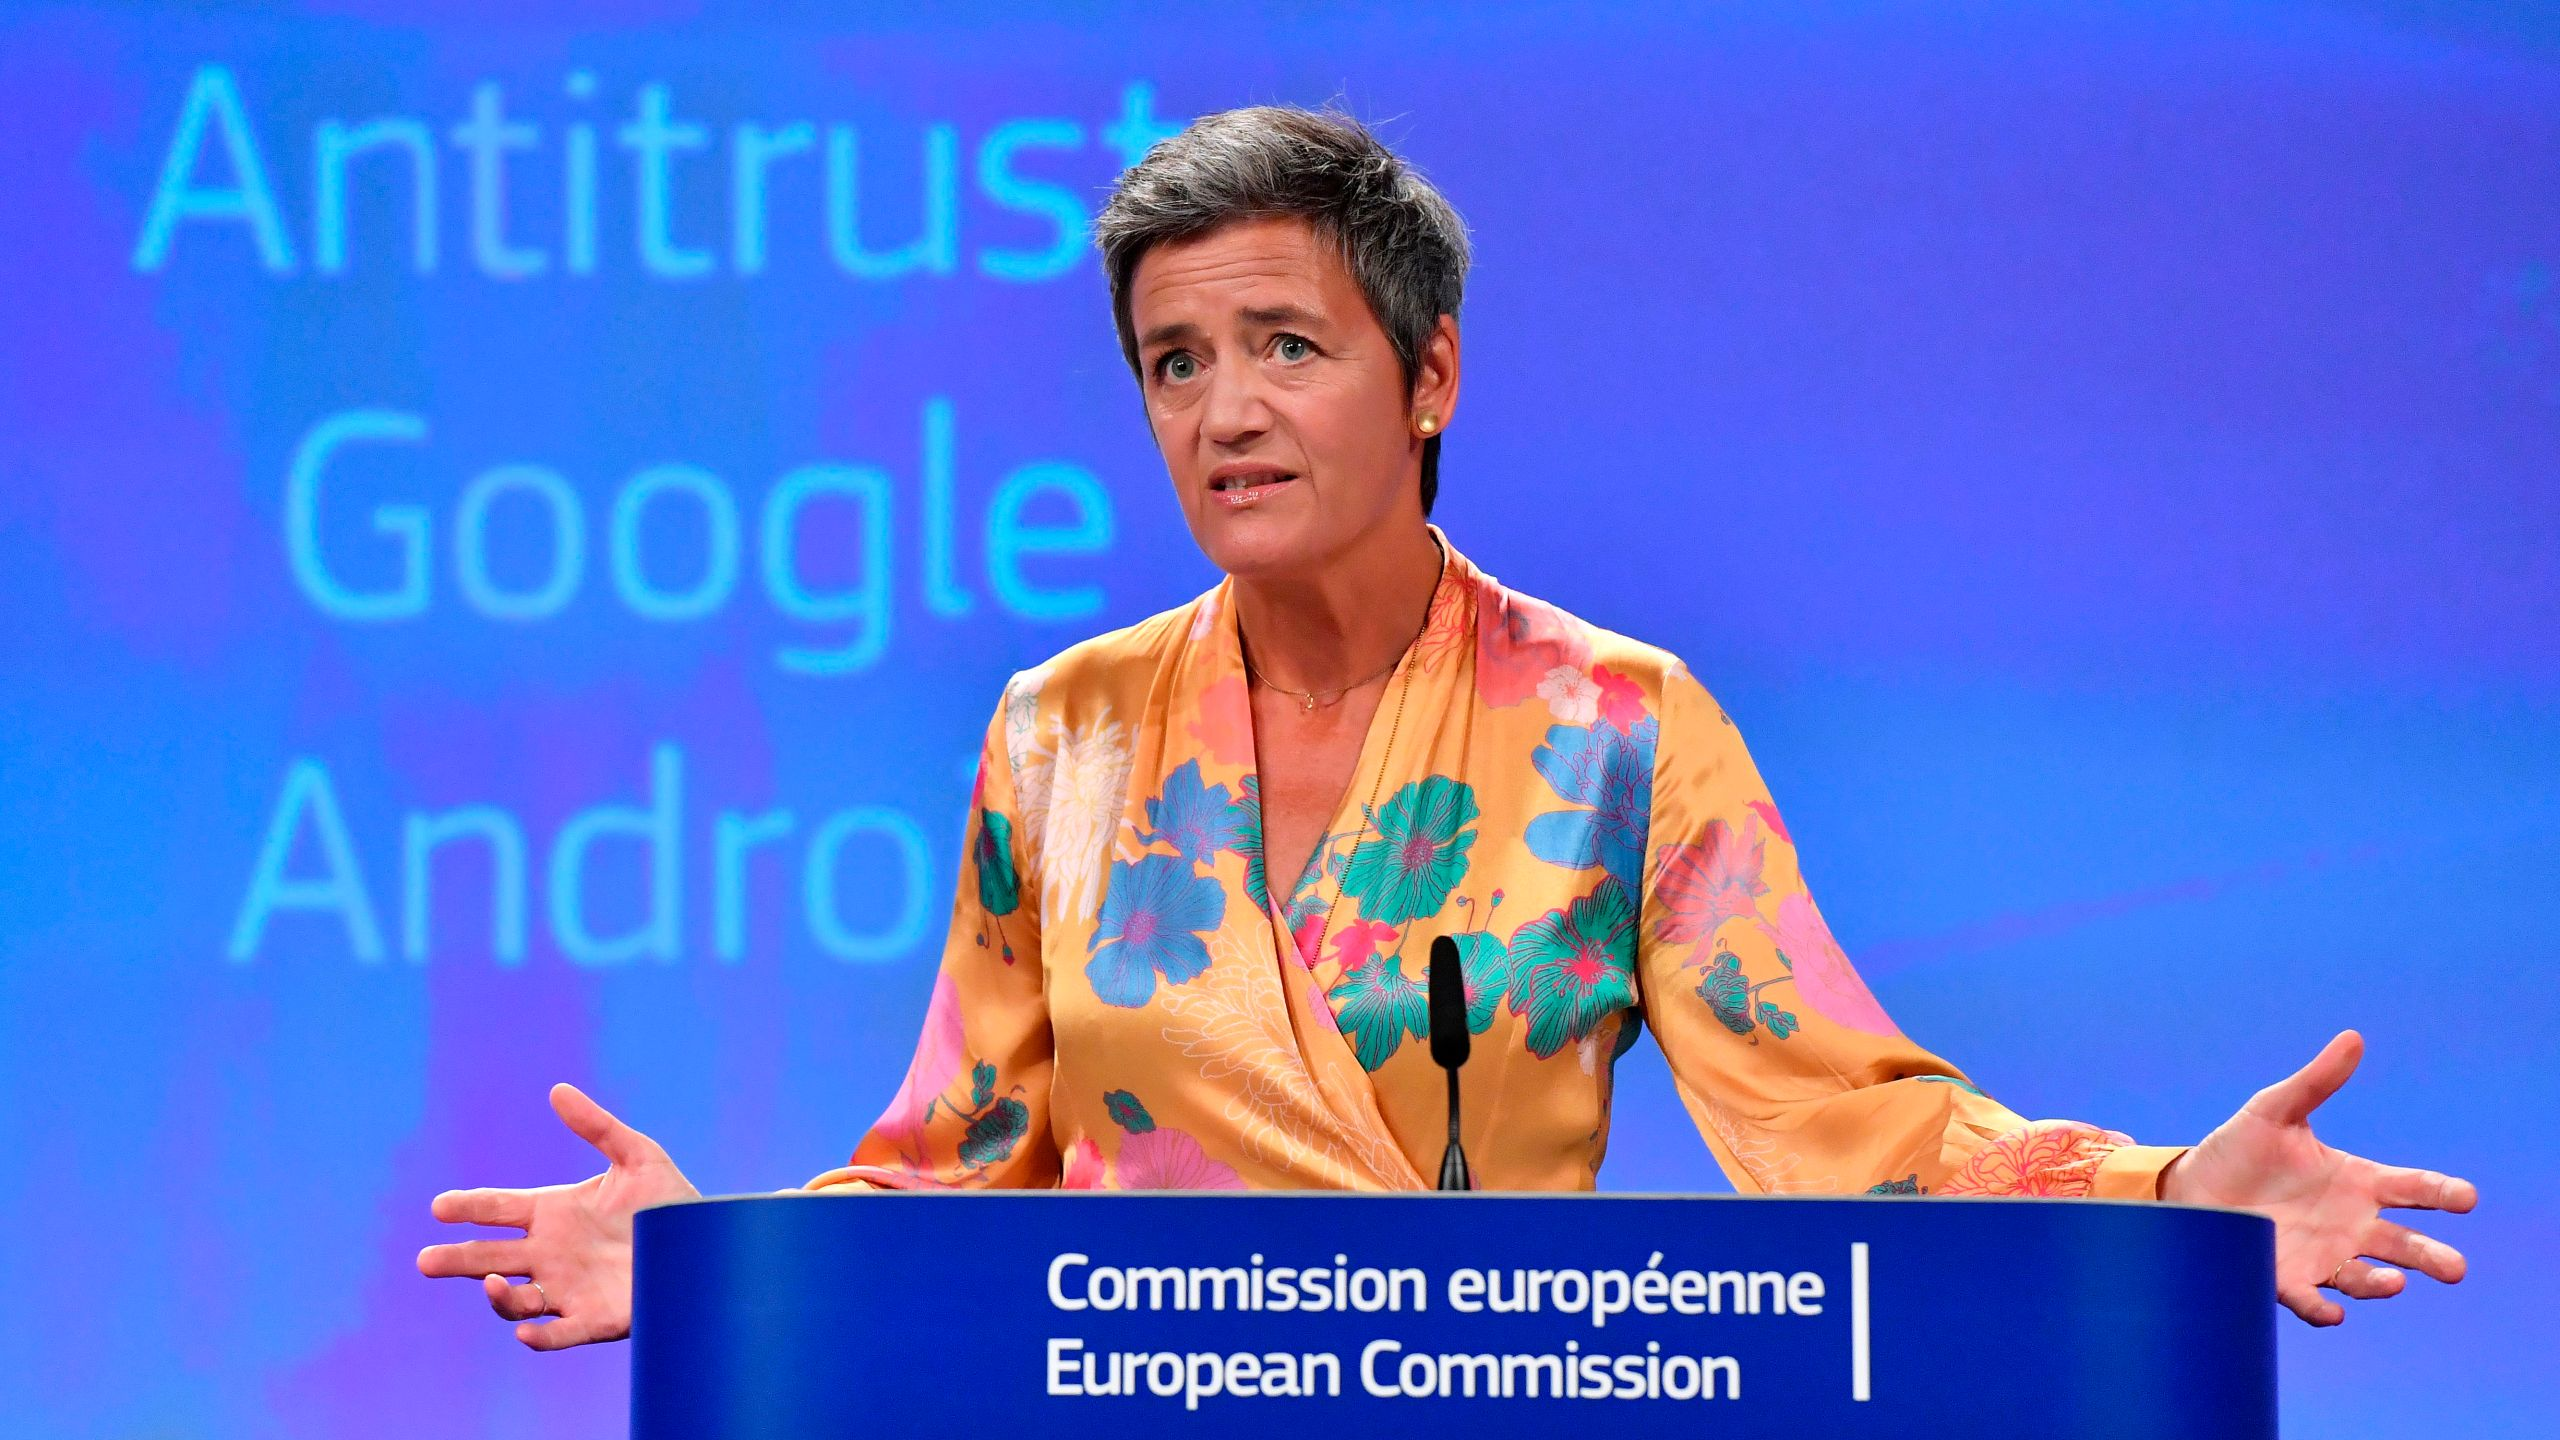 European Union Competition Commissioner Margrethe Vestager gives a joint press at the EU headquarters in Brussels on July 18, 2018. (Credit: John Thys/ AFP)